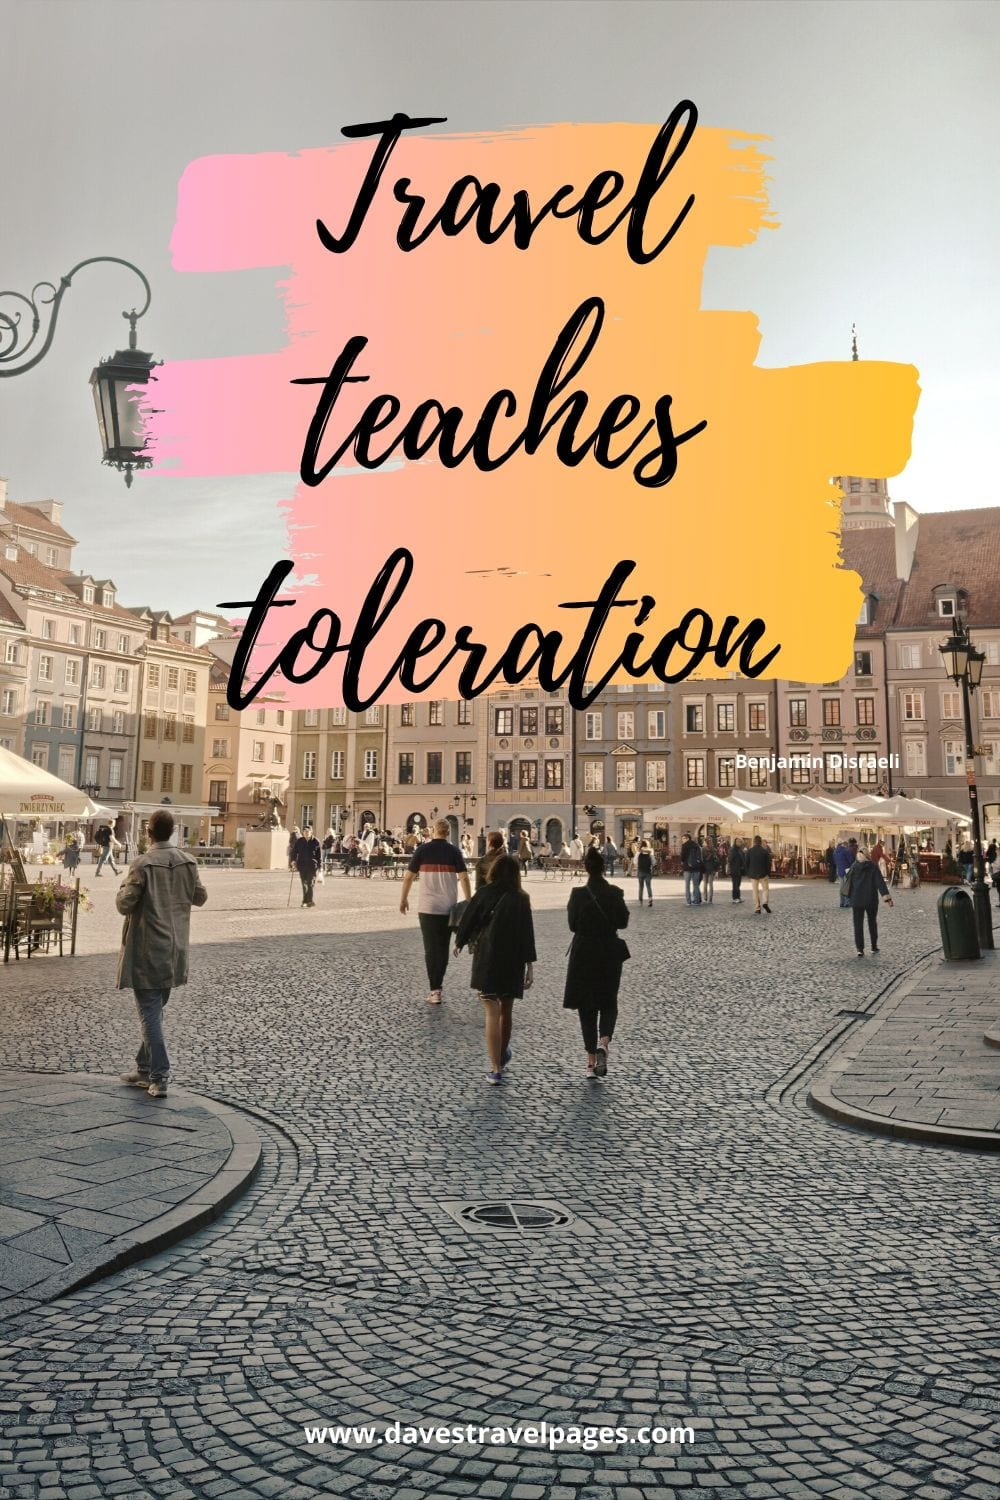 Travel teaches toleration. Benjamin Disraeli